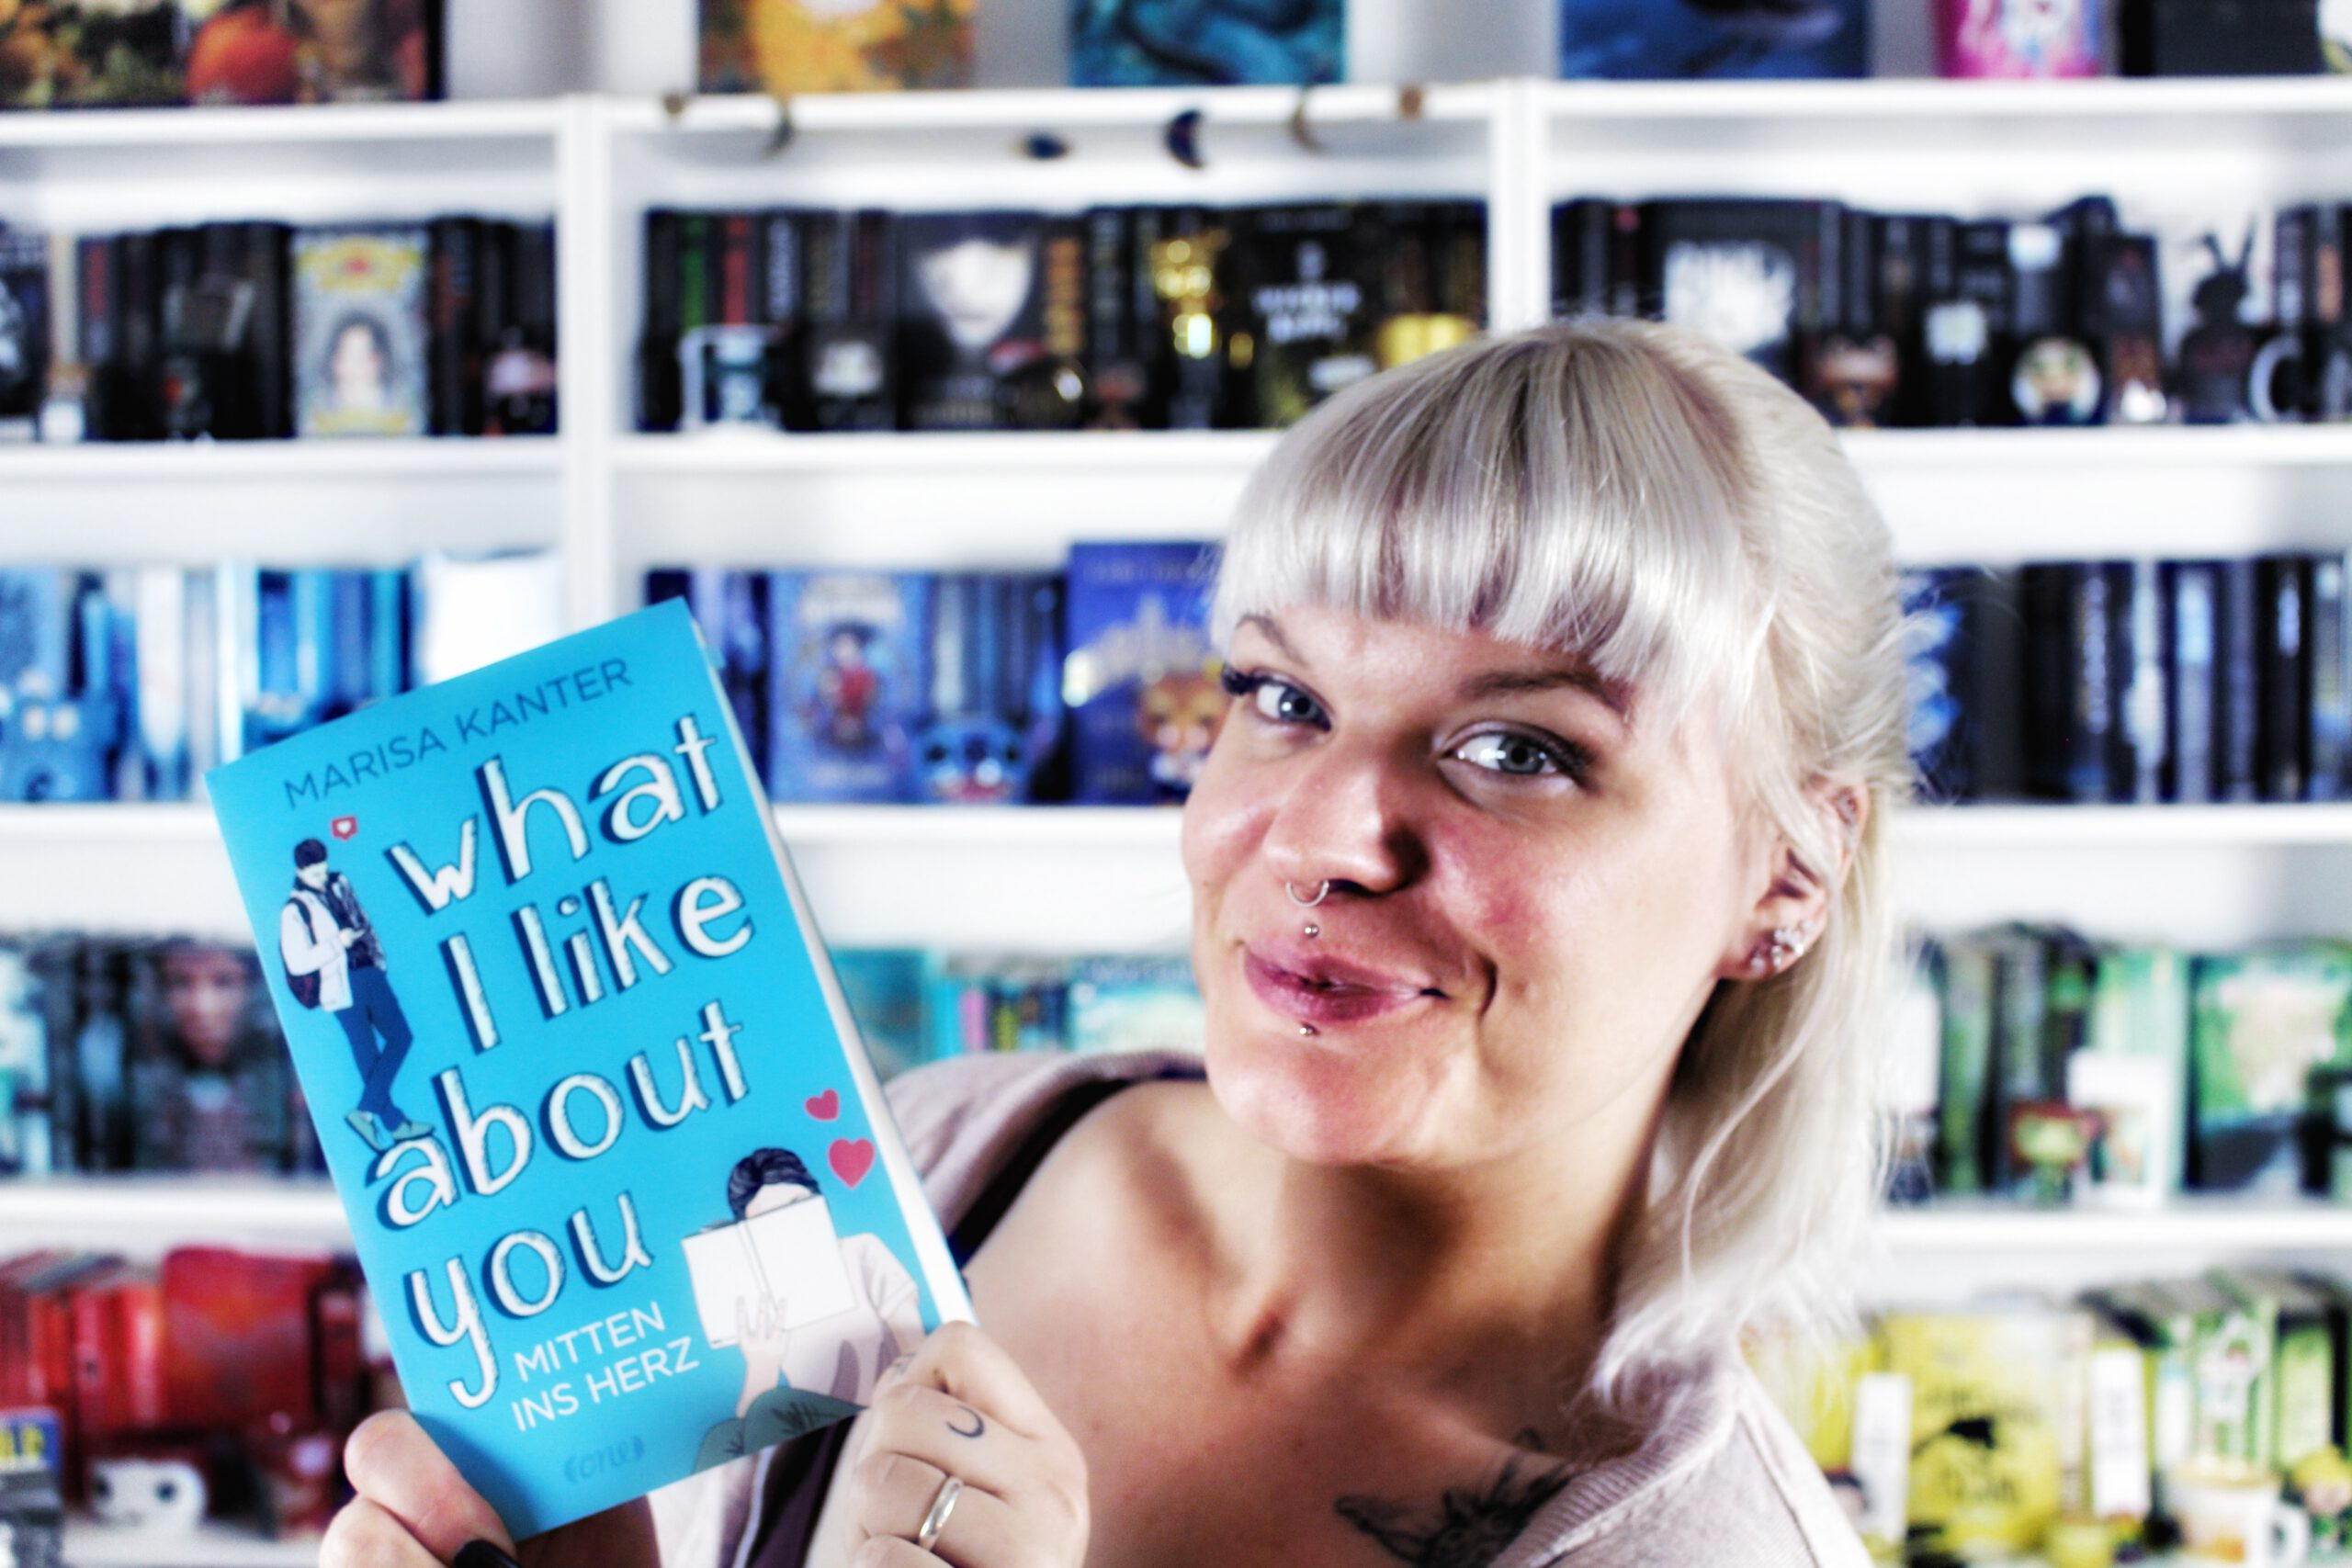 Rezension | What I like about you von Marisa Kanter